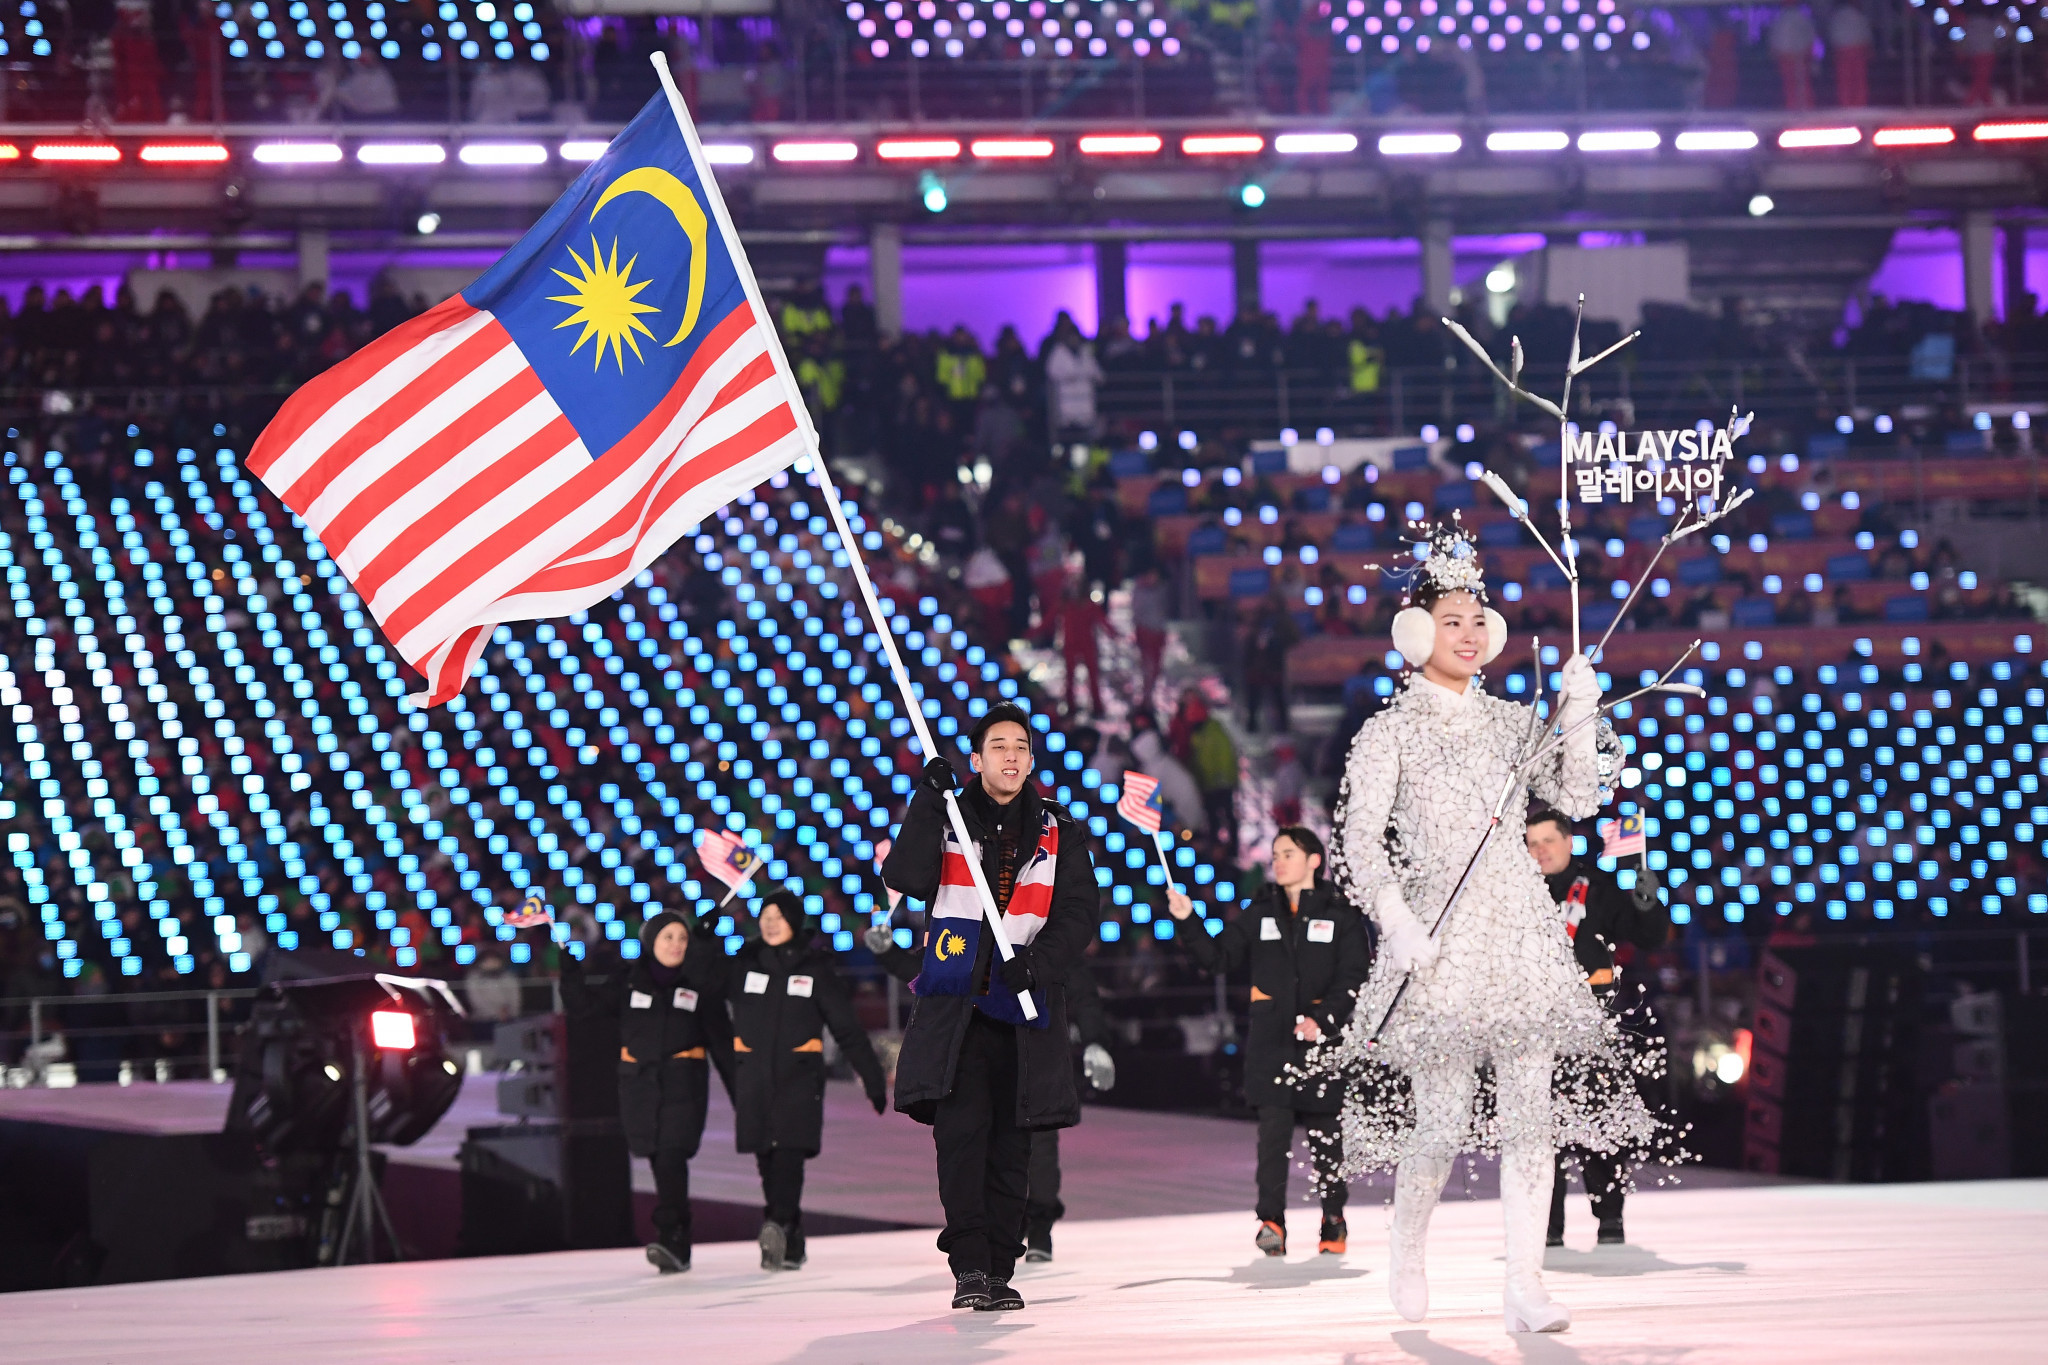 Malaysia is hoping to encourage more women to become involved with its sports governance ©Getty Images